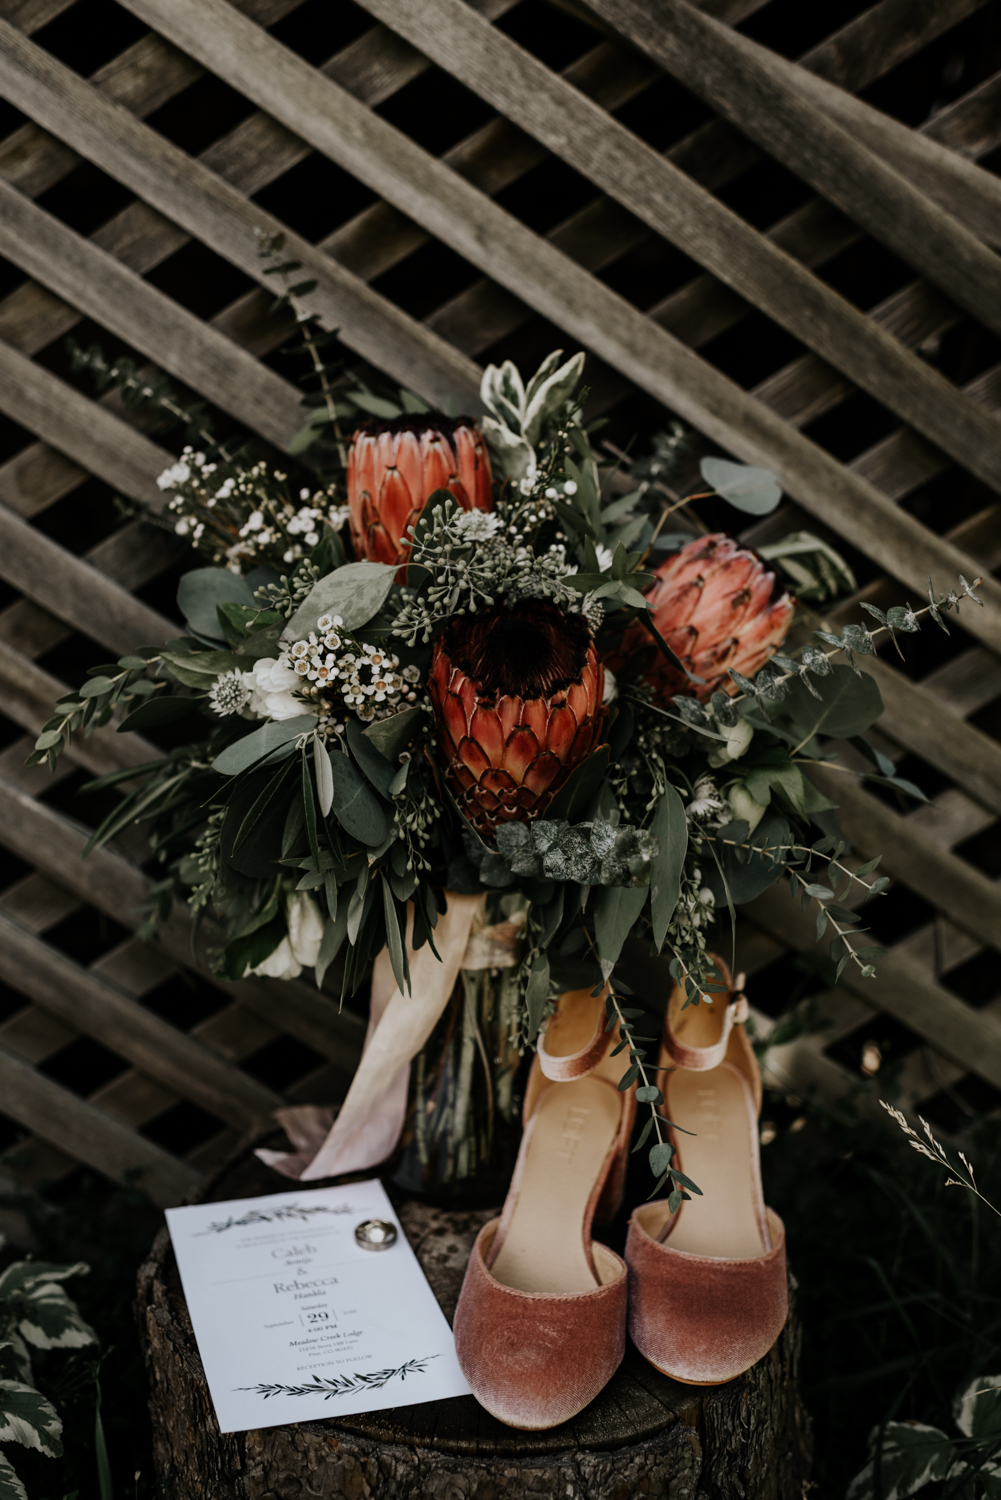 Intimate Wedding Day Bridal Details Photos at Meadow Creek, Pine in Colorado